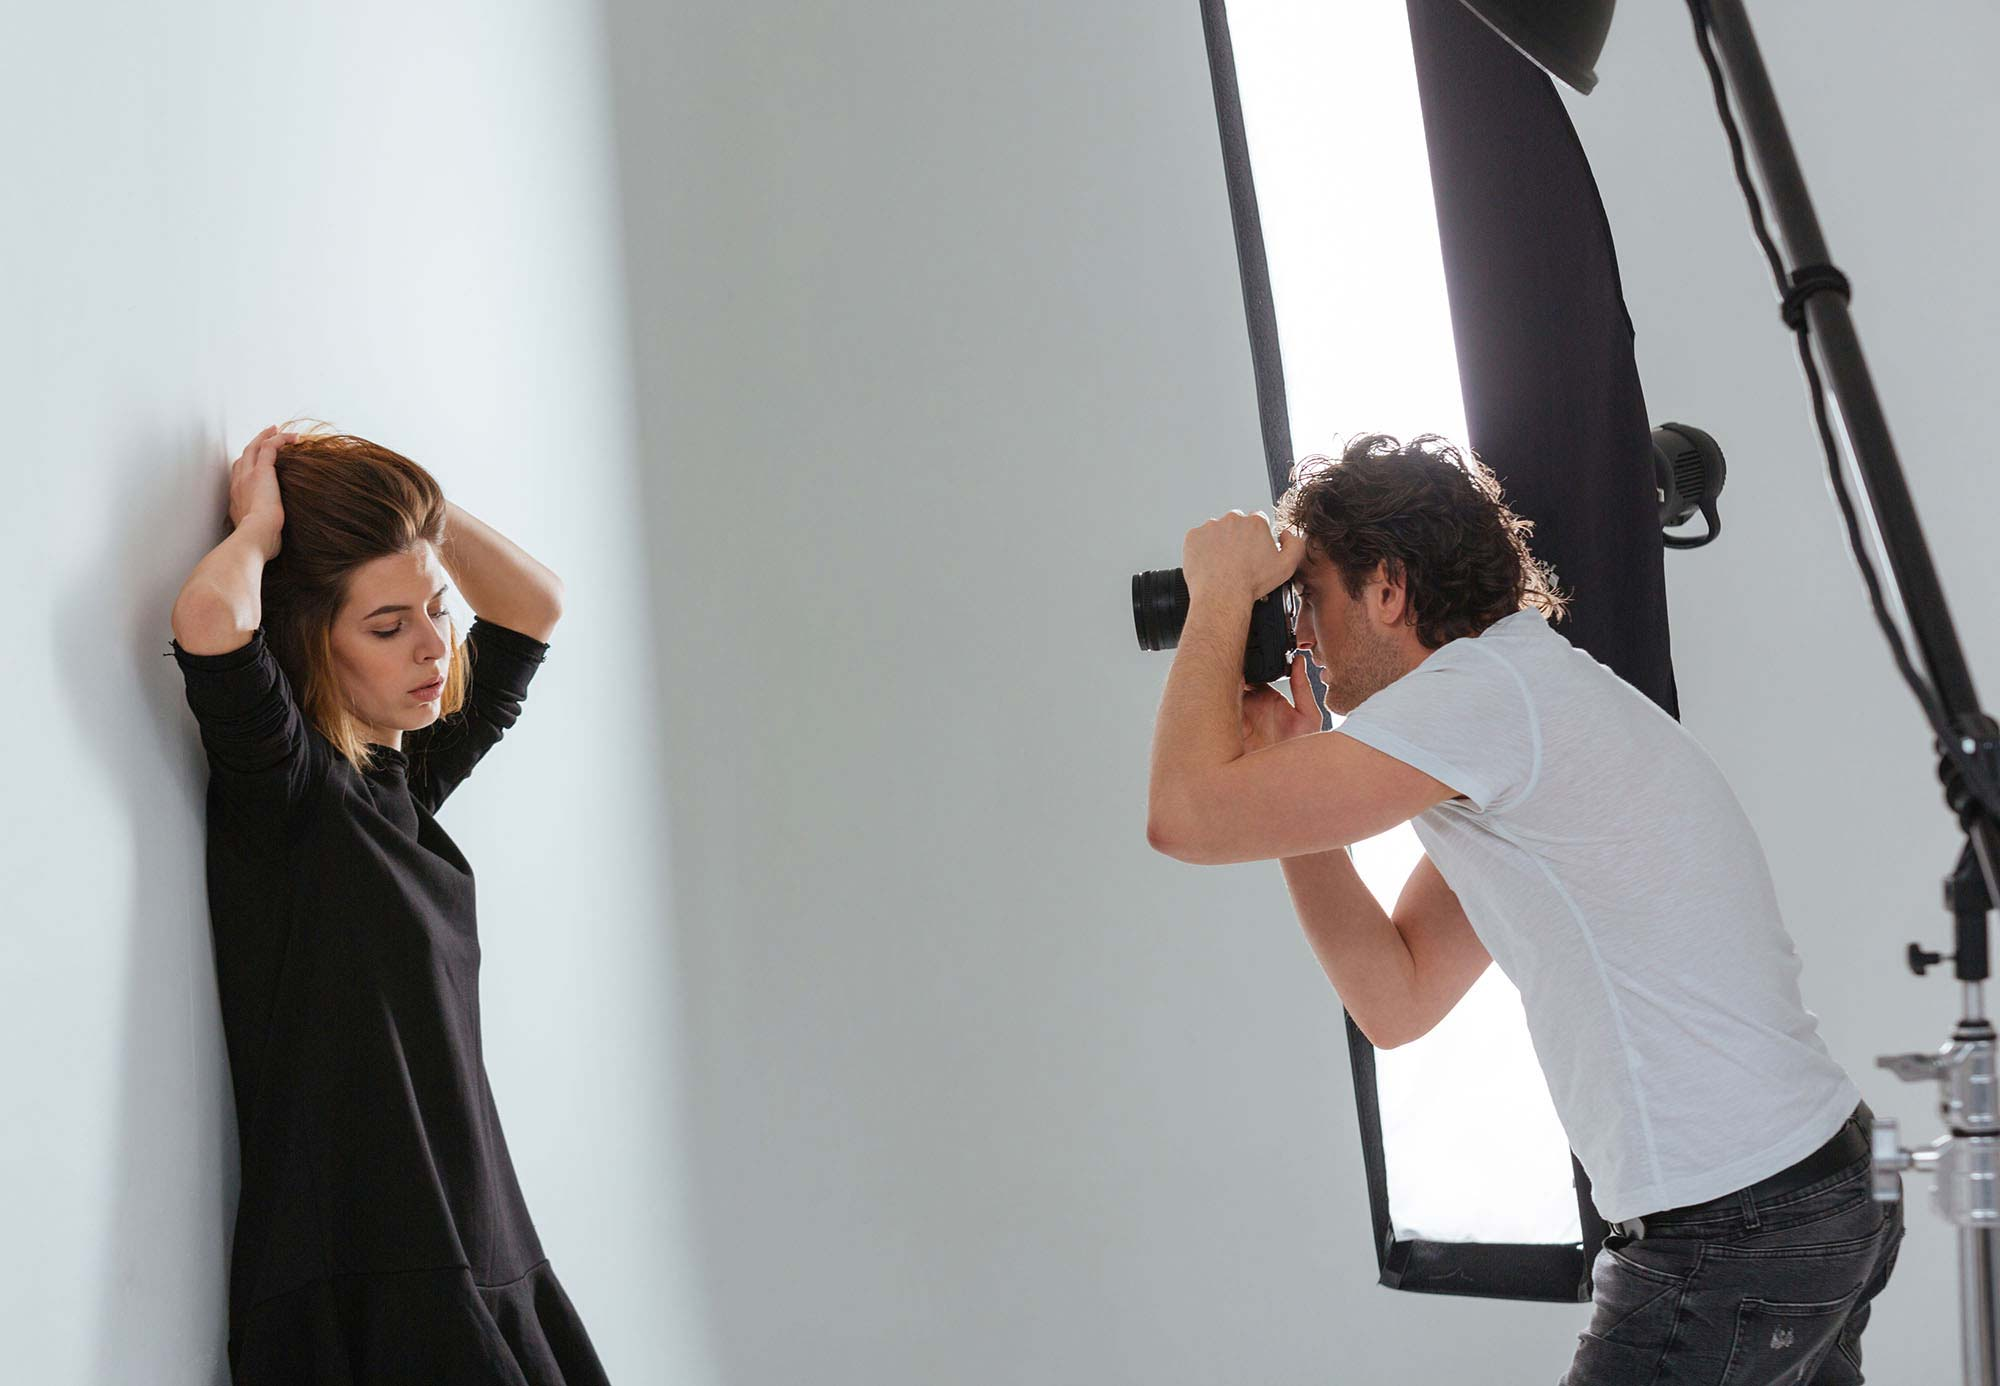 FAQ: What is a Portrait Lens? - 42 West, the Adorama Learning Center